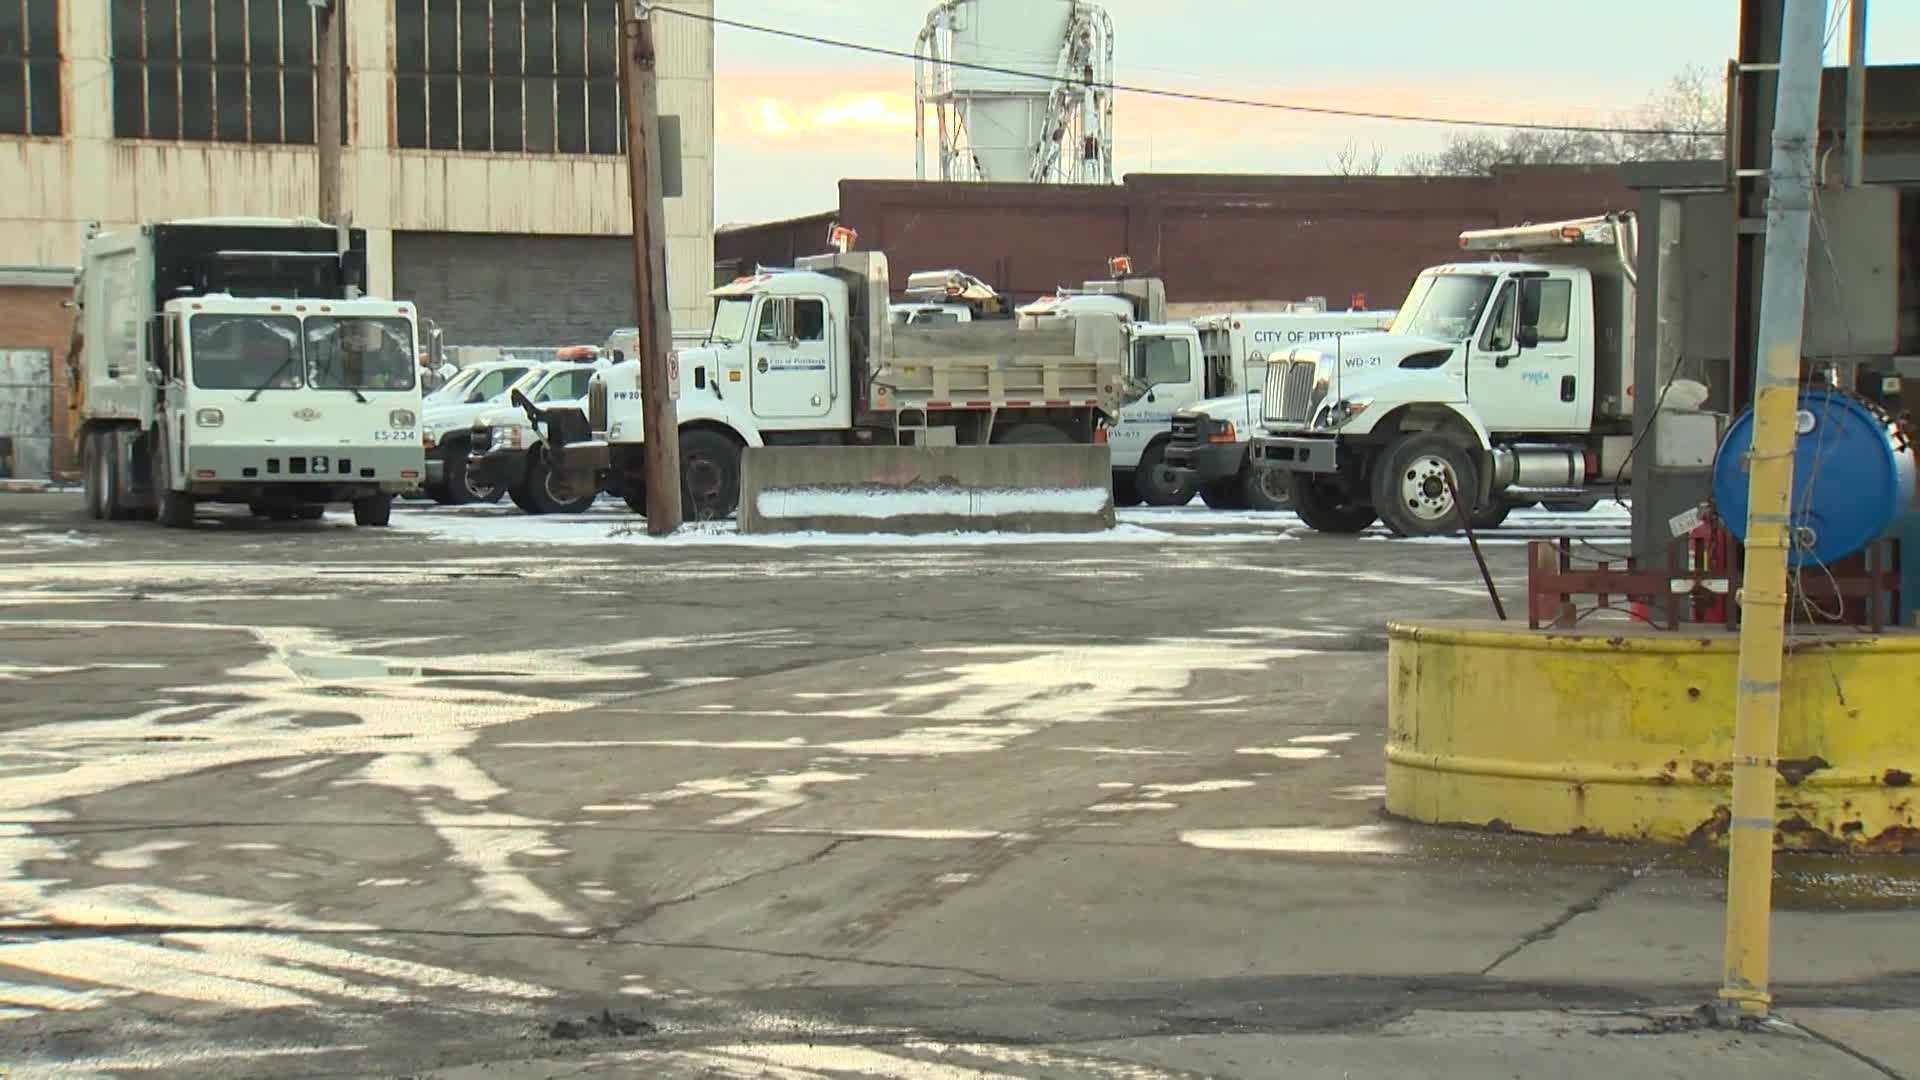 city of Pittsburgh snow trucks